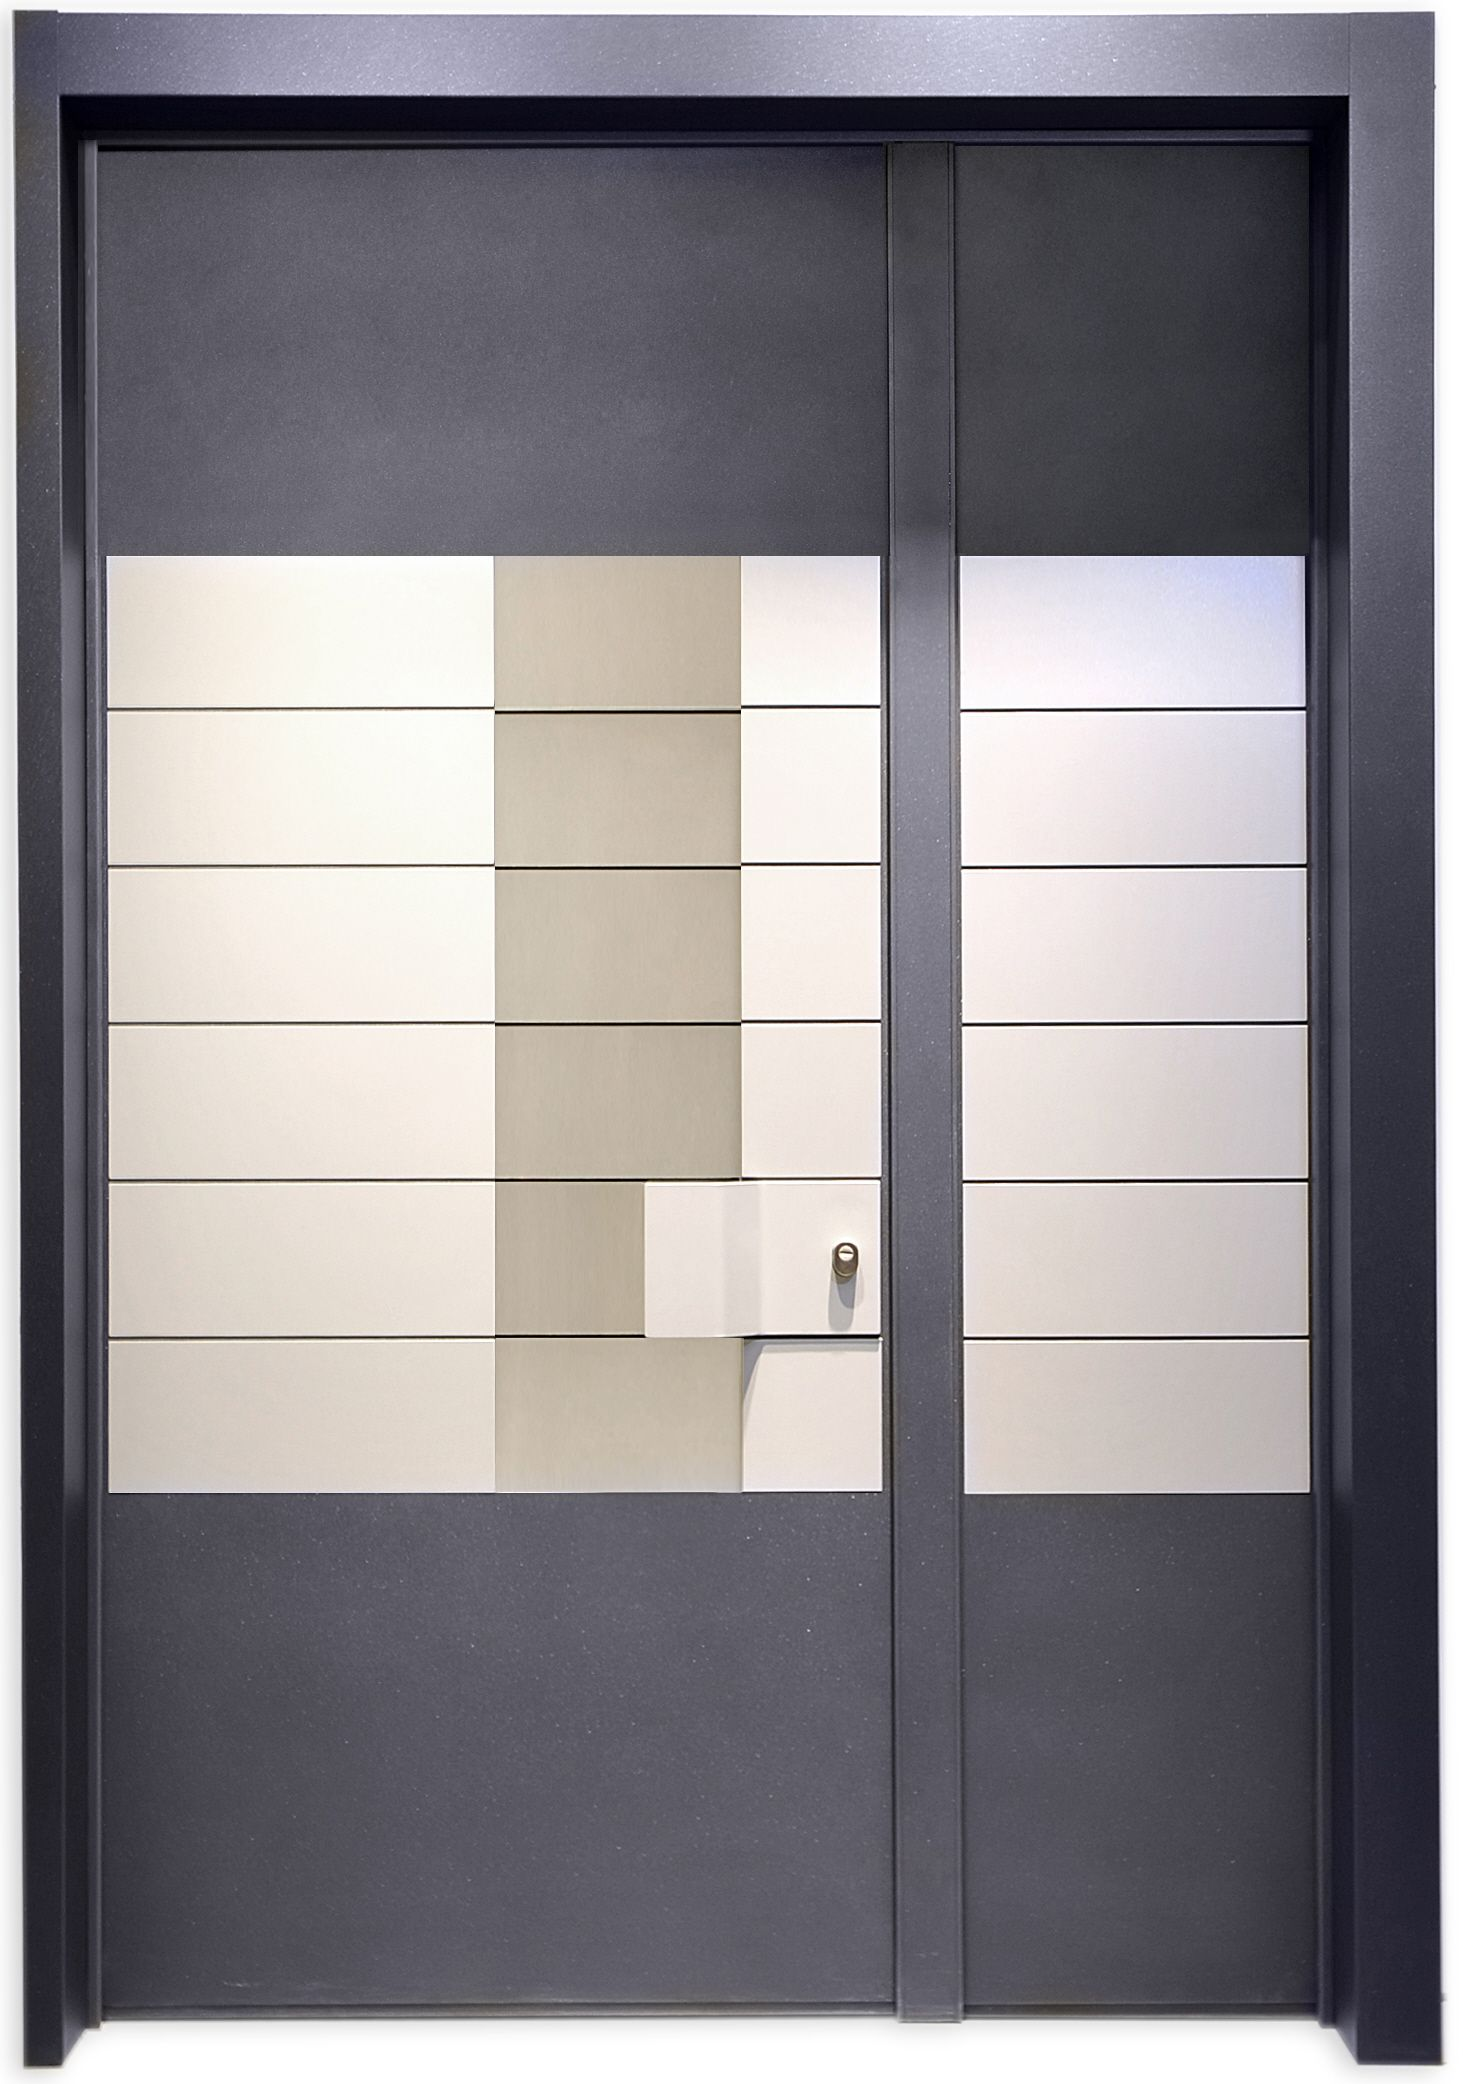 The one and a Half wing Rowena Door is the product of the space concept as a raw element for the creation of the interior design, without any need for decorations or excessive details.  The inspiration is contemporary, with clean lines, a clear geometry, large spaces, innovation and breaking rules.